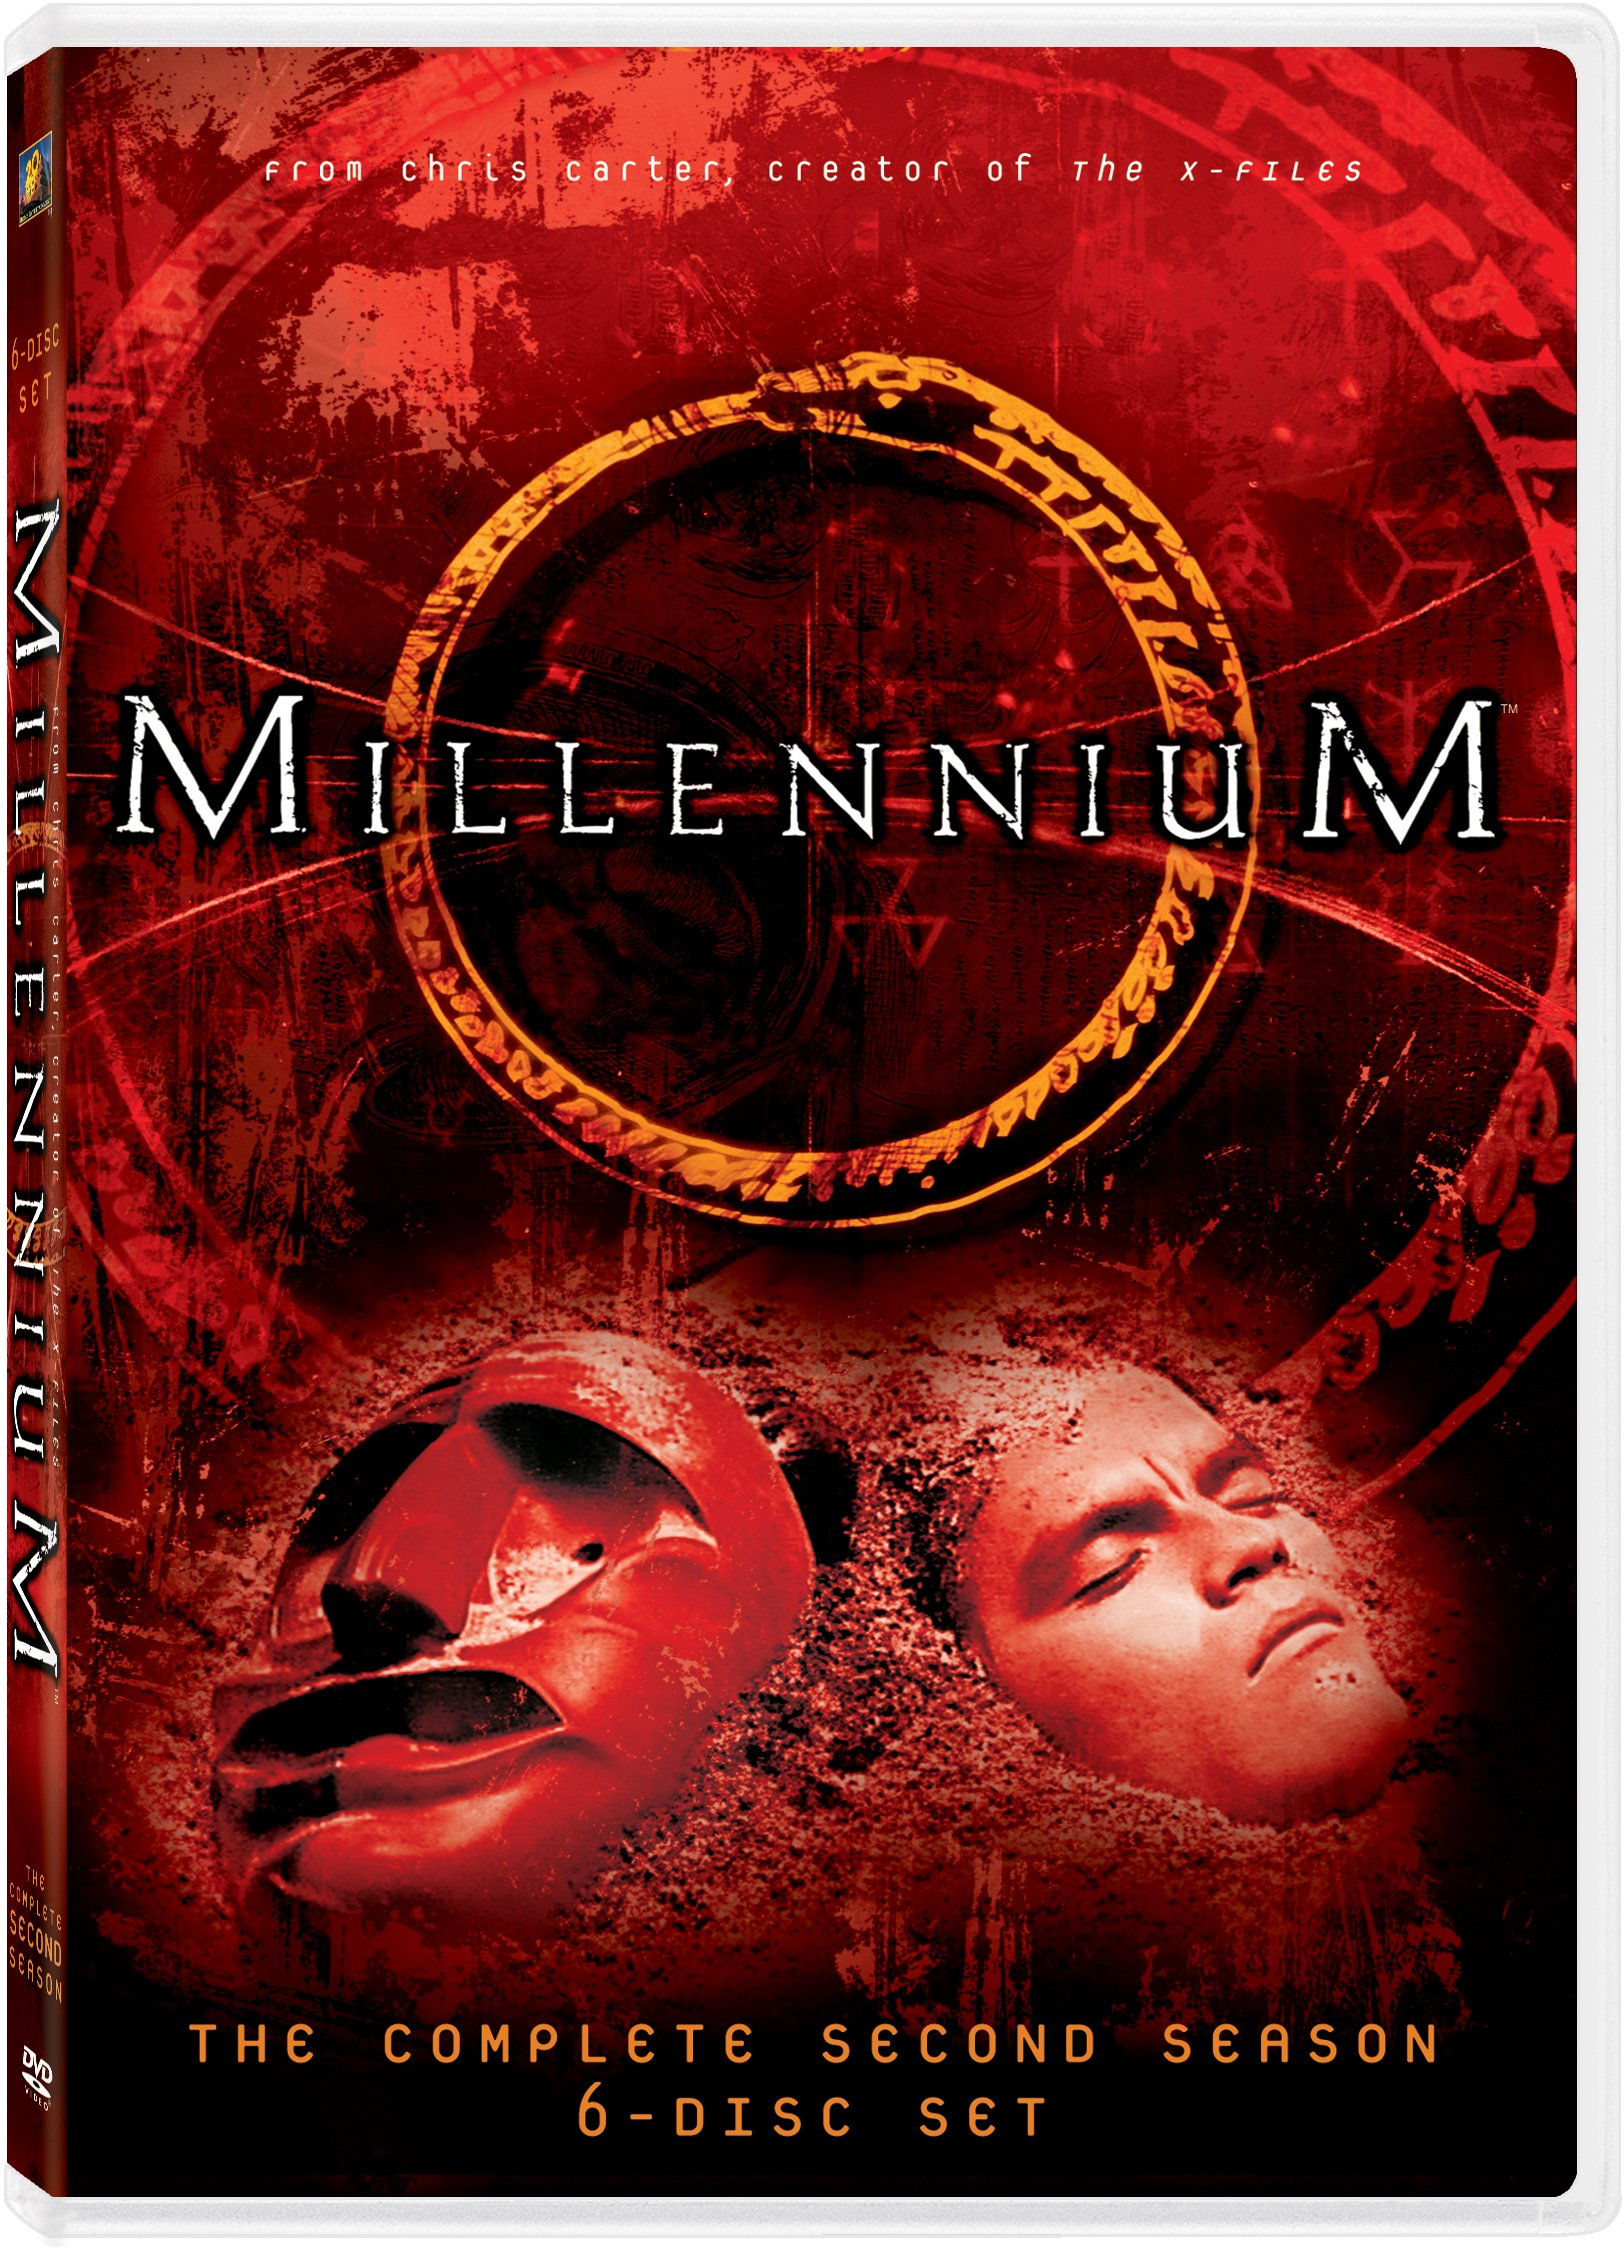 Millennium - The Complete Second Season by 20th Century Fox